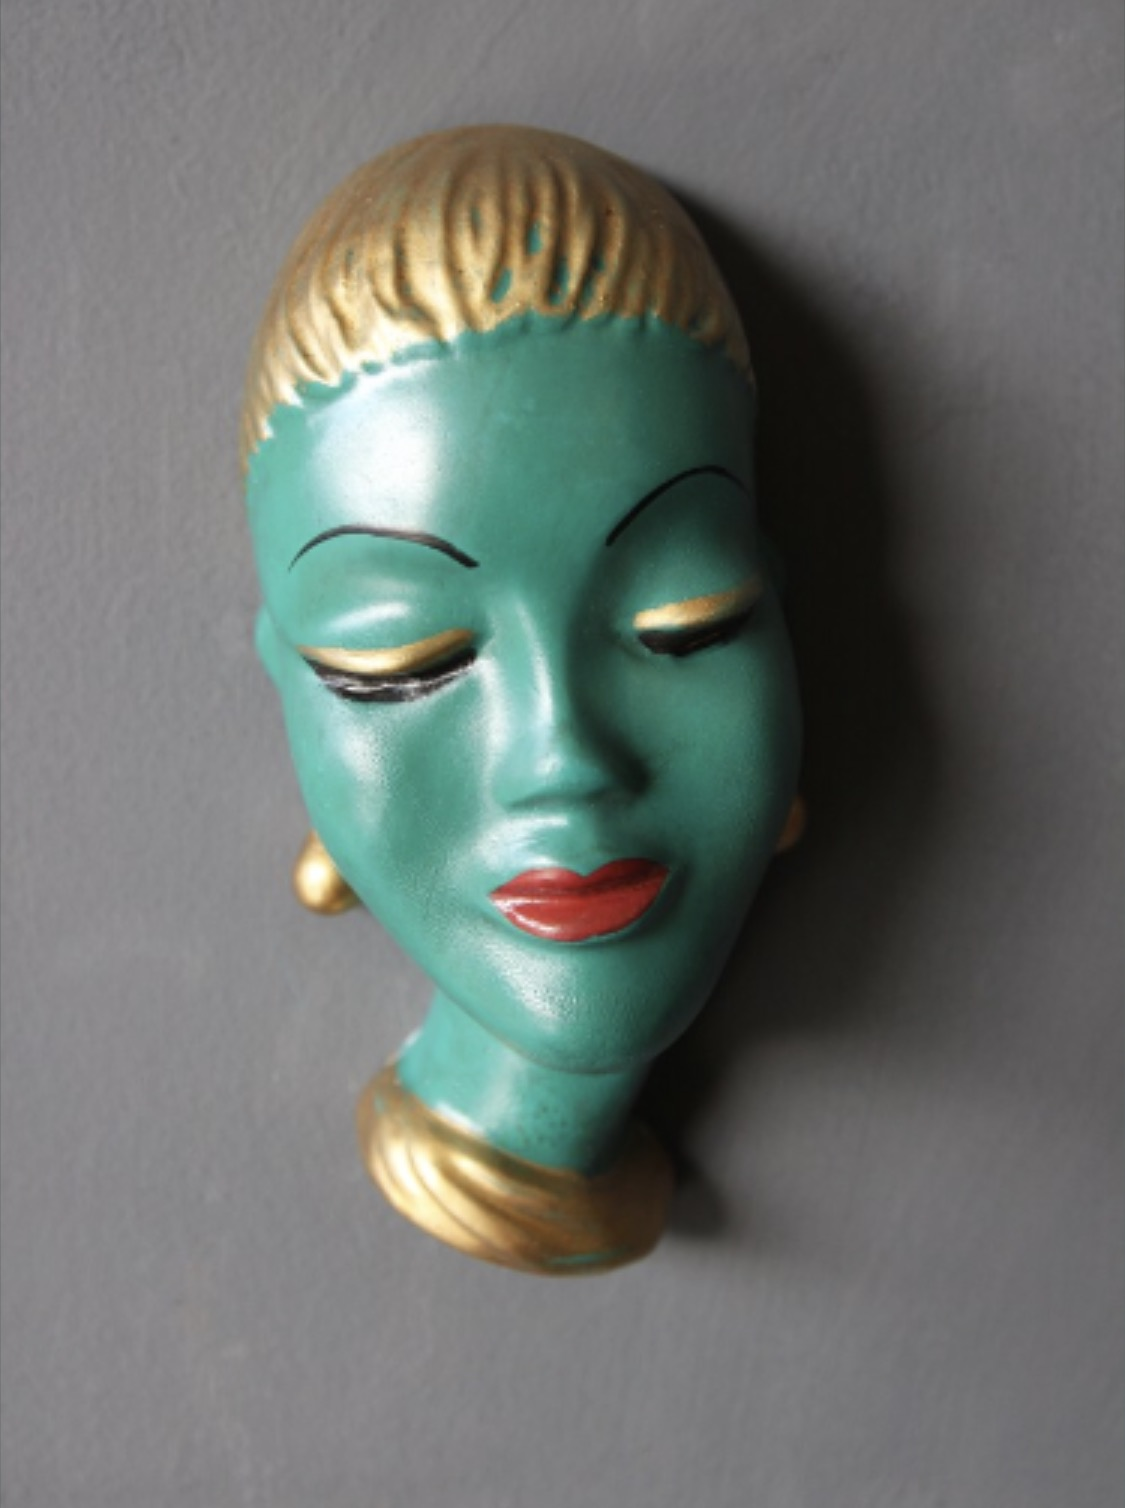 6.   Blue Lady Head Wall Hanging   £10.95.  Tretchikoff inspired, I love this quirky piece.